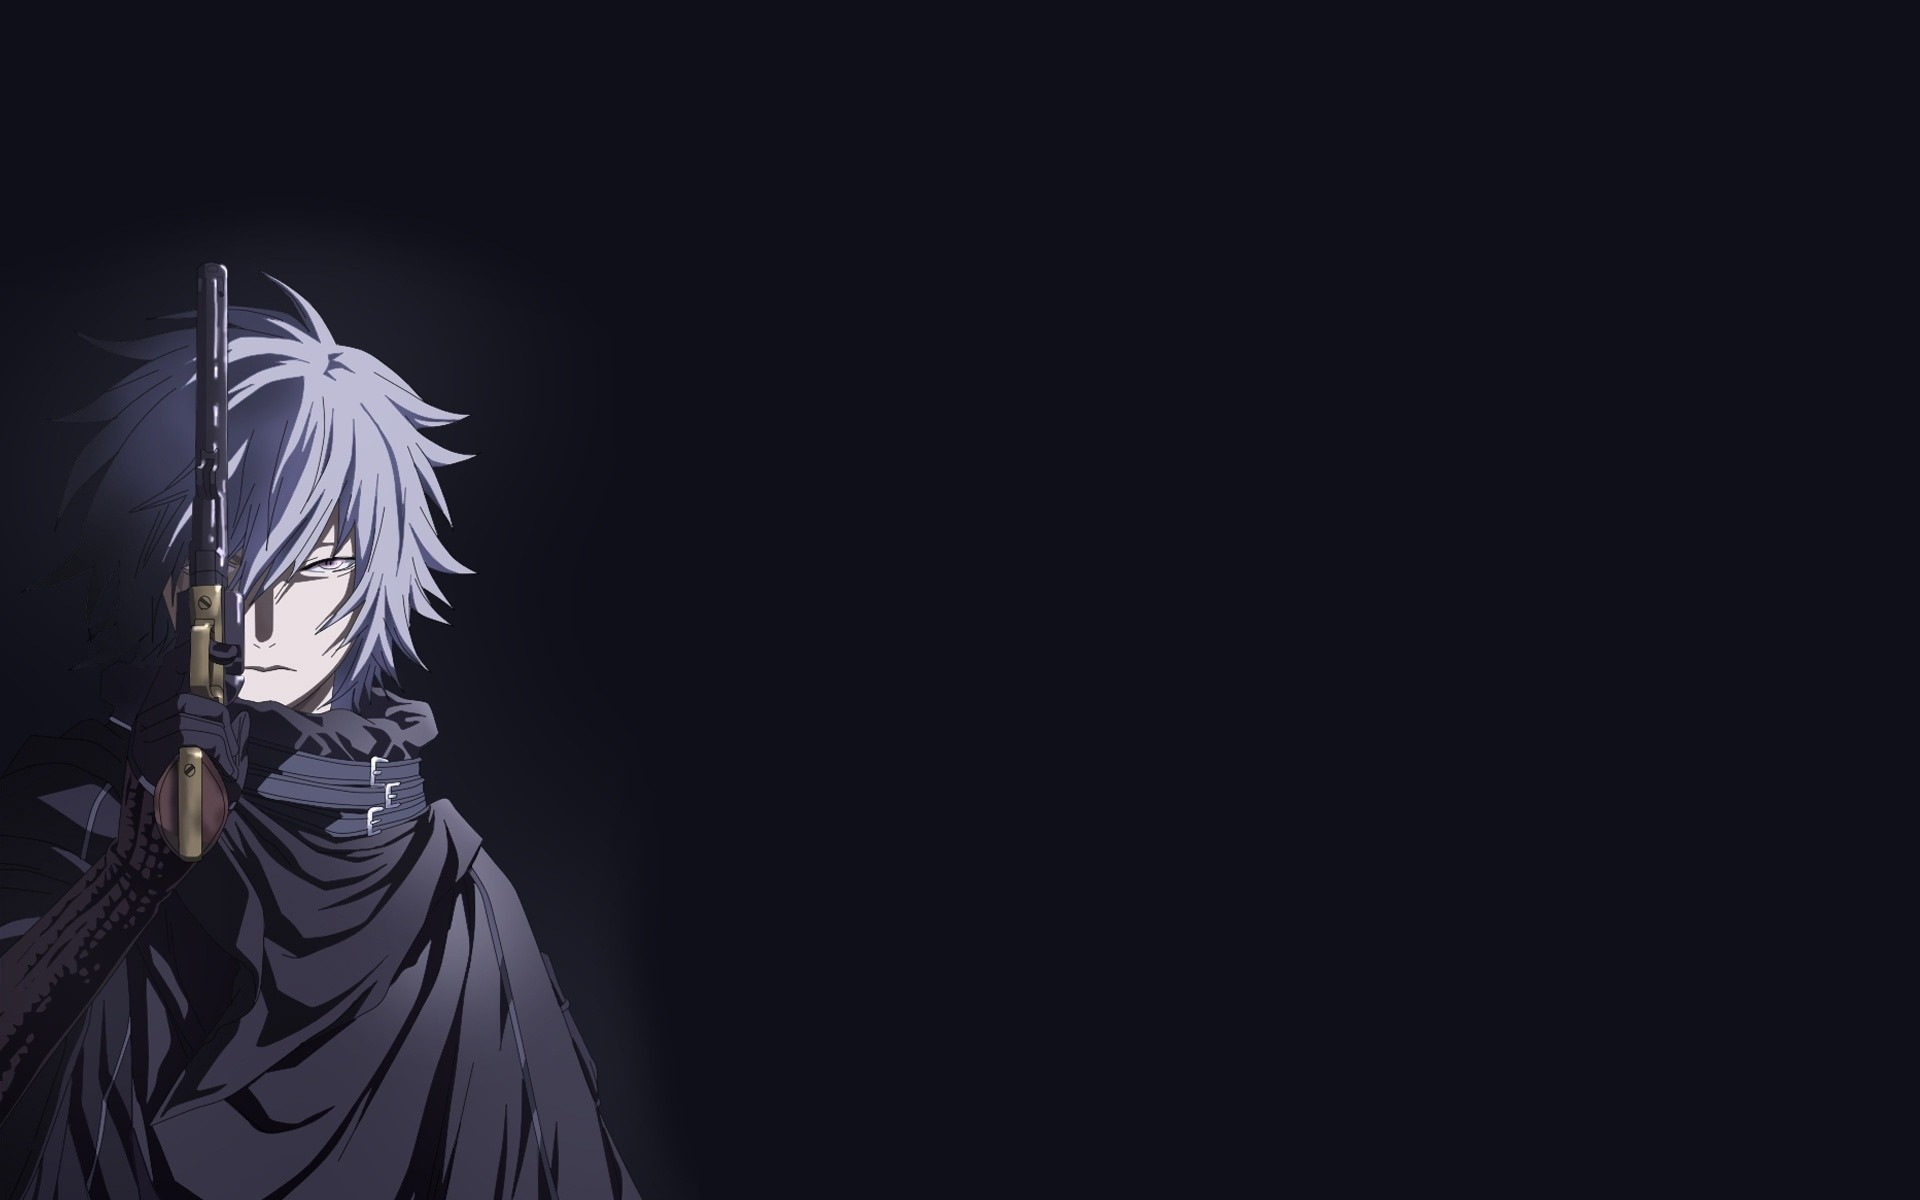 Res: 1920x1200, Fotos Dark Anime Wallpaper Hd Wallpapers Dark Anime Wallpaper